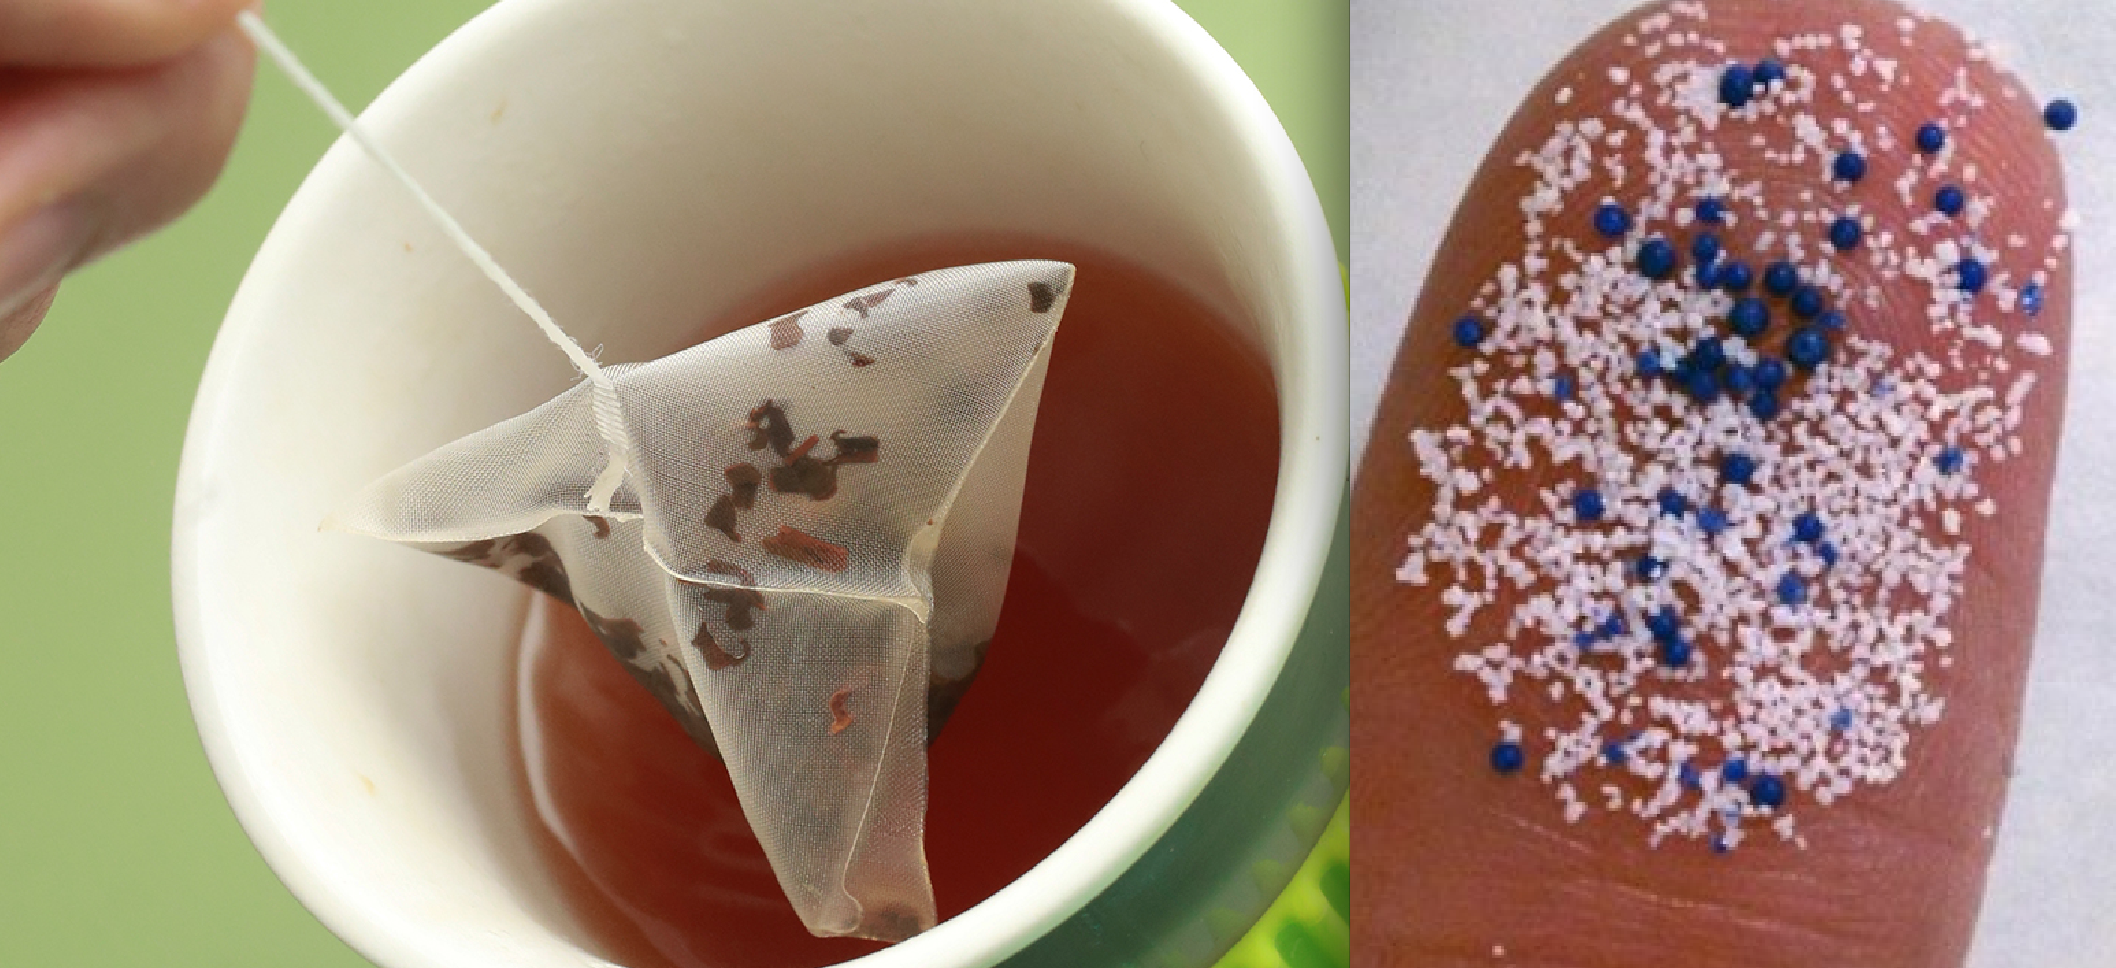 CAUTION ADVISED: Study: Tea Bags Leaching off Billions of Microplastic Particles into Herbal, Green Teas